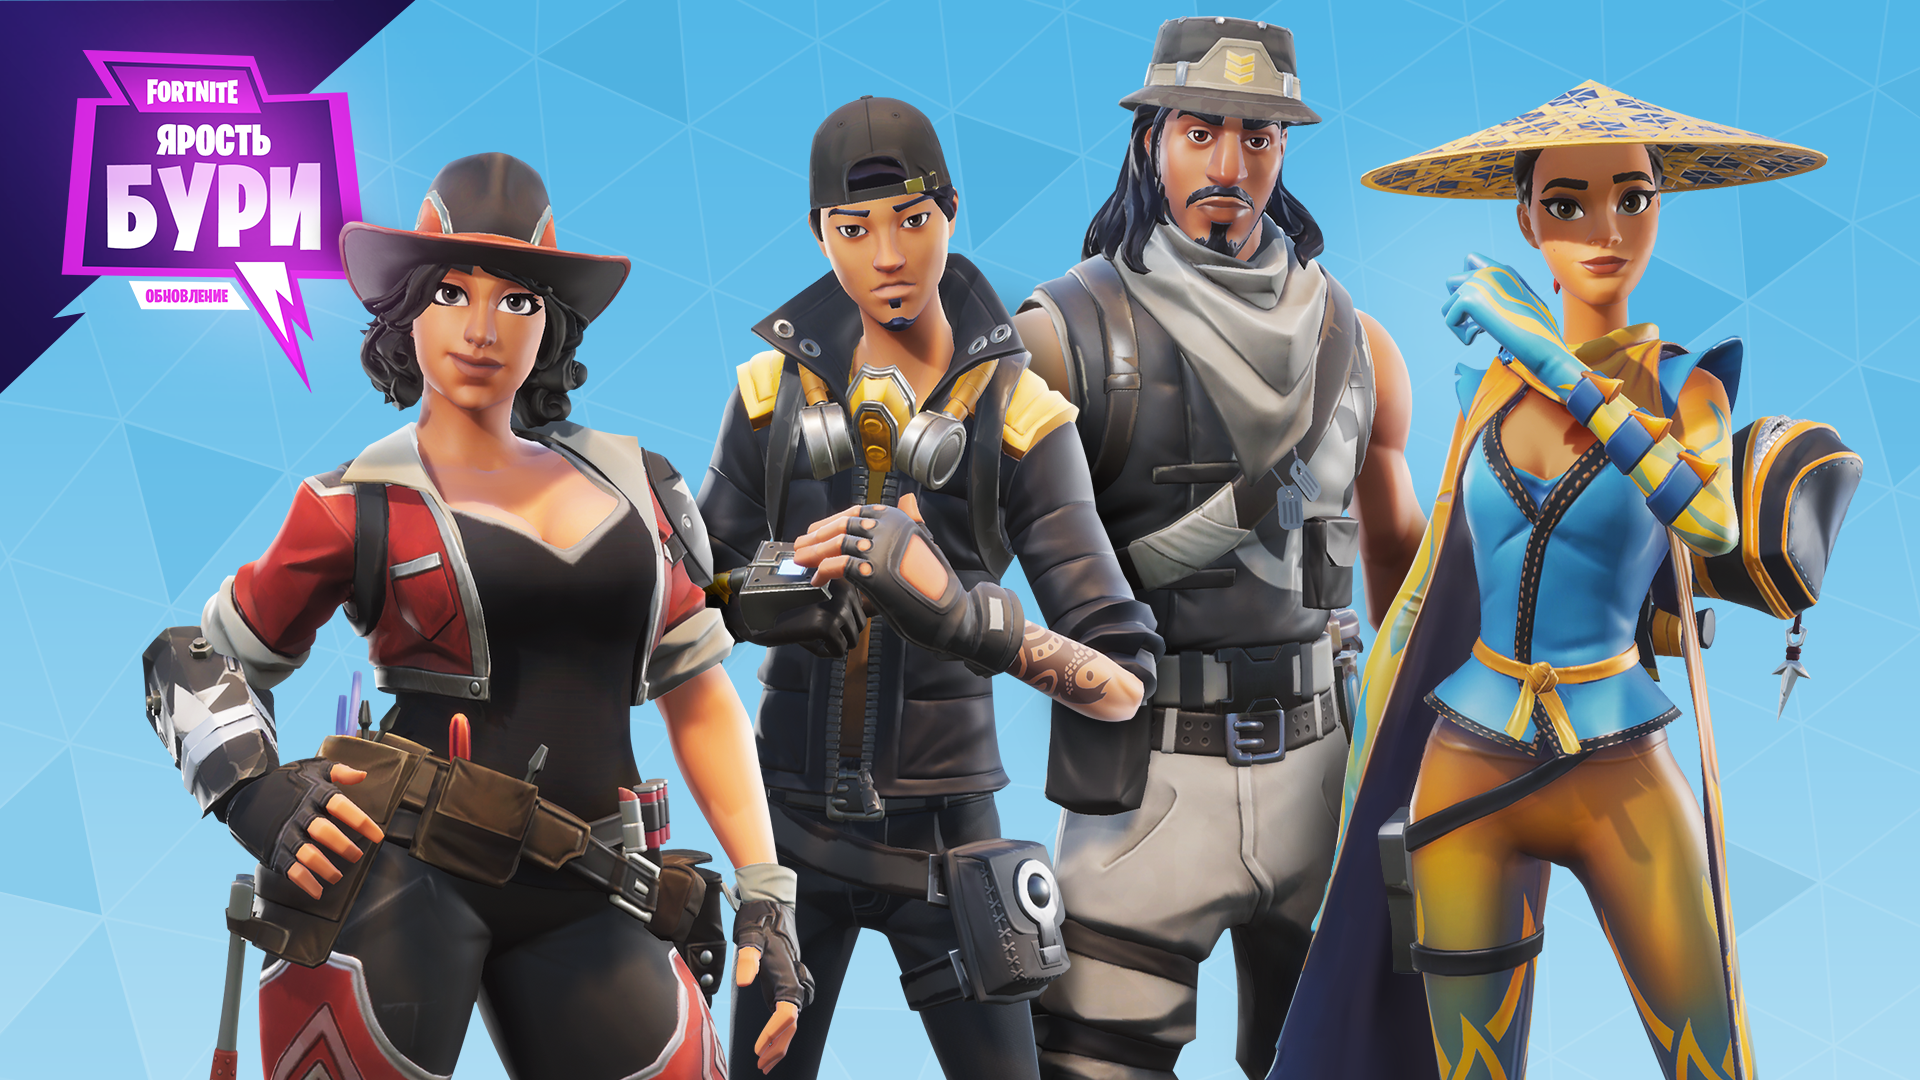 Fortnite%2Fblog%2Fsurvive-the-storm---release-notes%2FRUS_New-Hereos-1920x1080-8f0a40123a3f8c12406ae8ca510355aa85ce7517